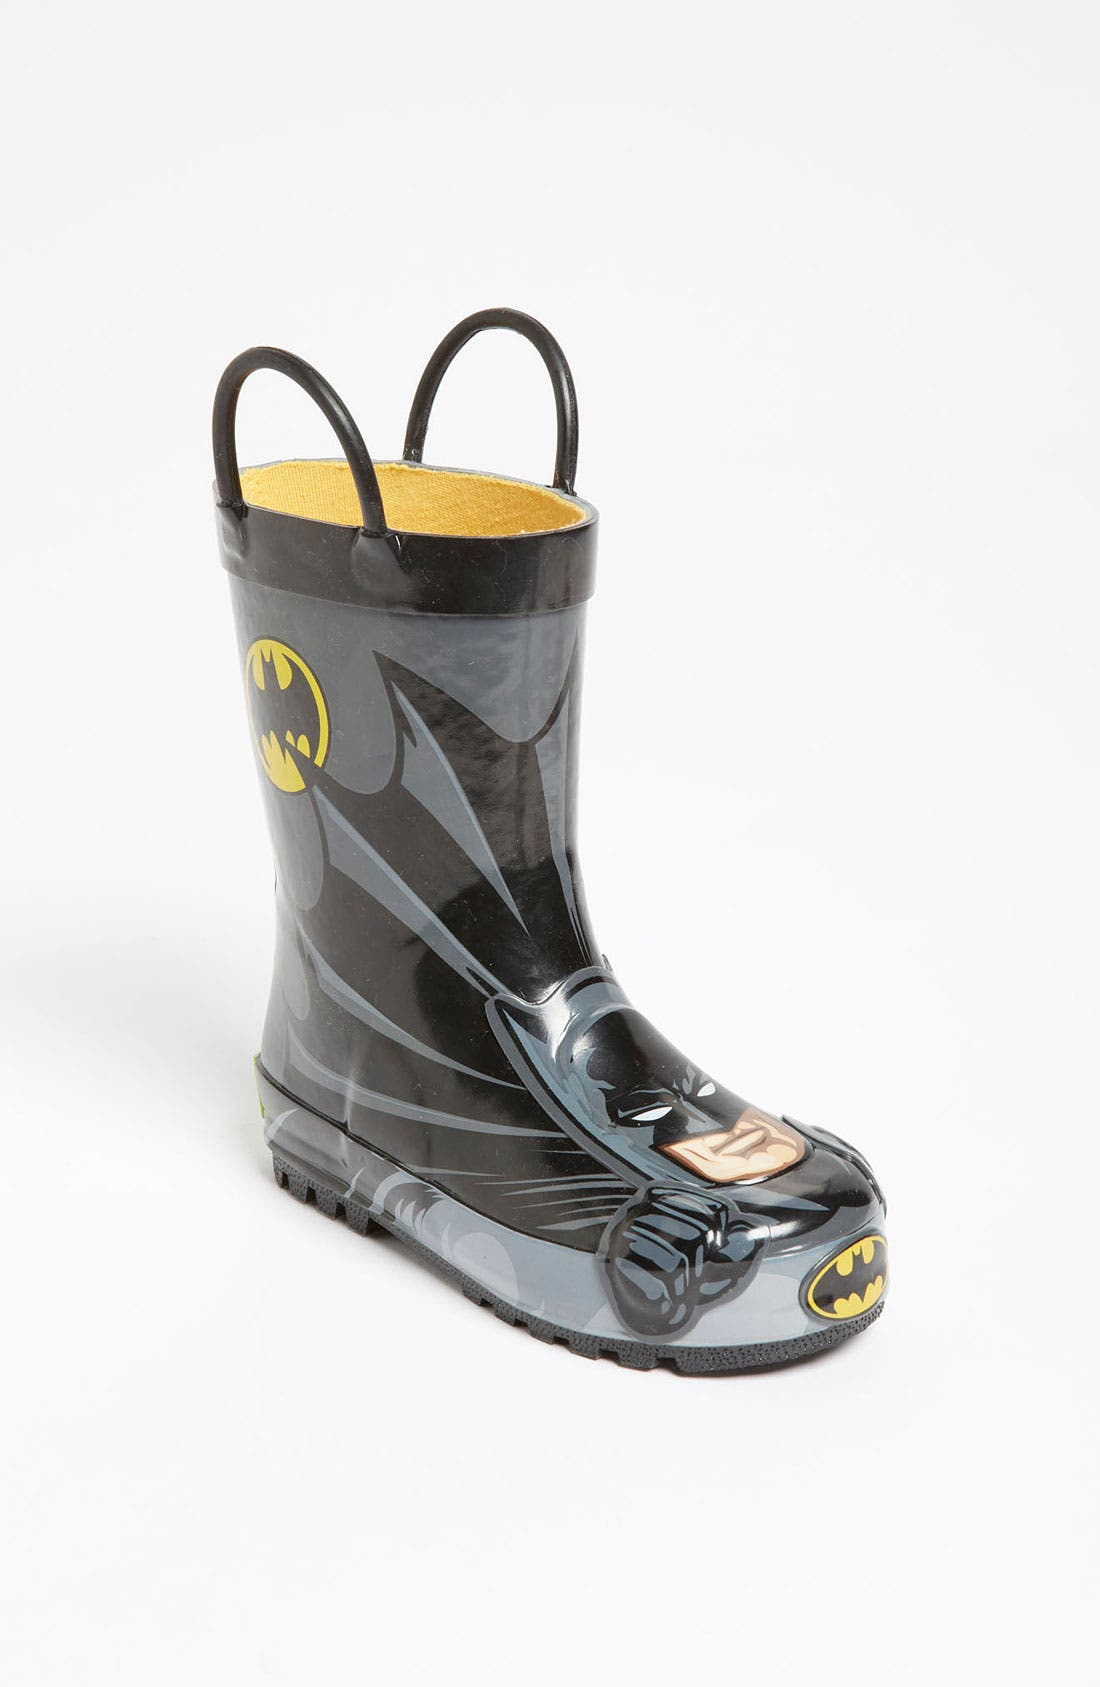 Alternate Image 1 Selected - WESTERN CHIEF BATMAN EVERLASTING RAIN BOOT